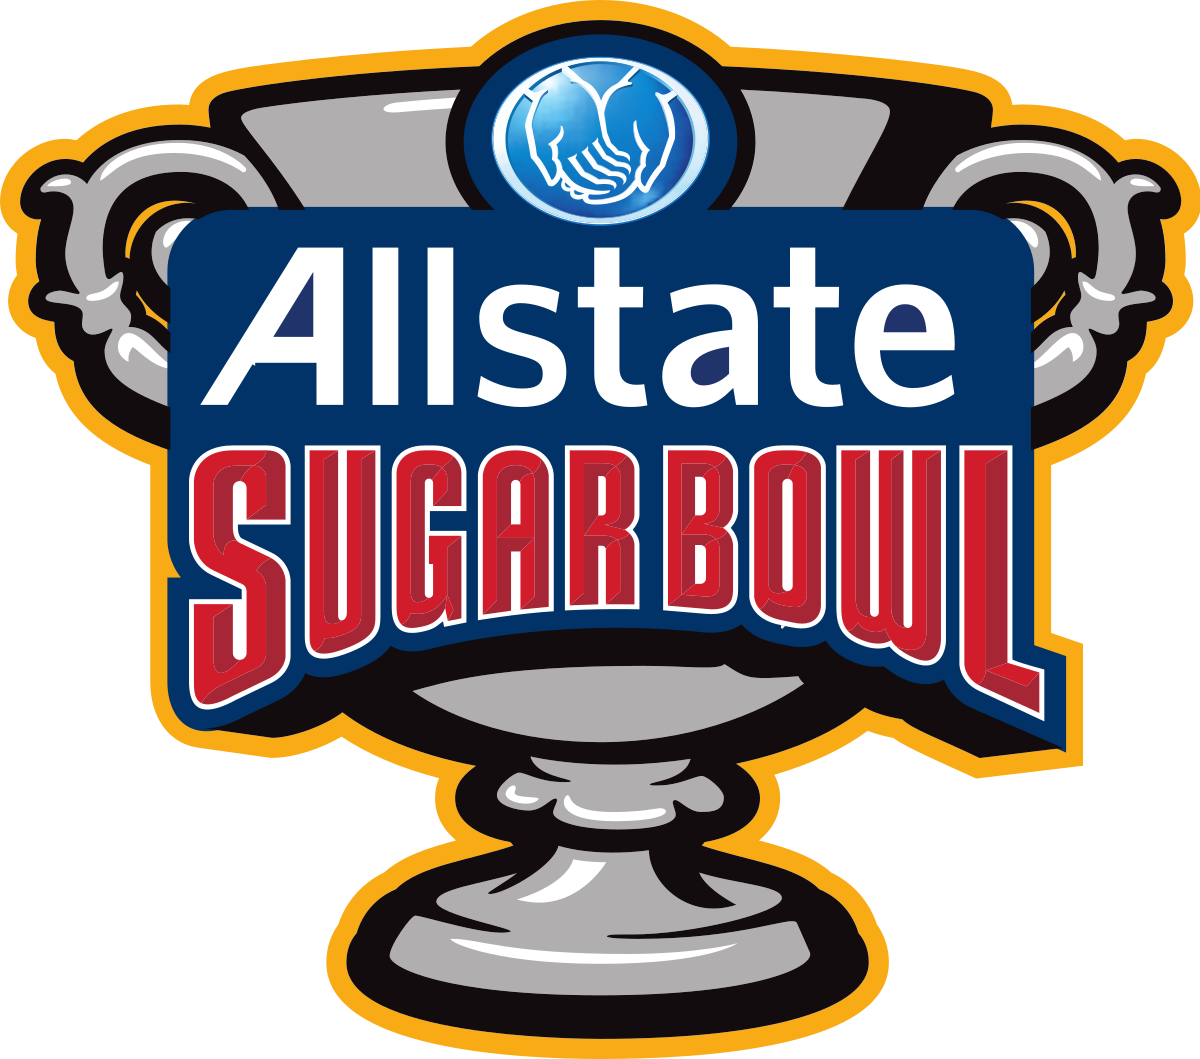 Daddy's Hangout 2019 All State Sugar Bowl Prediction